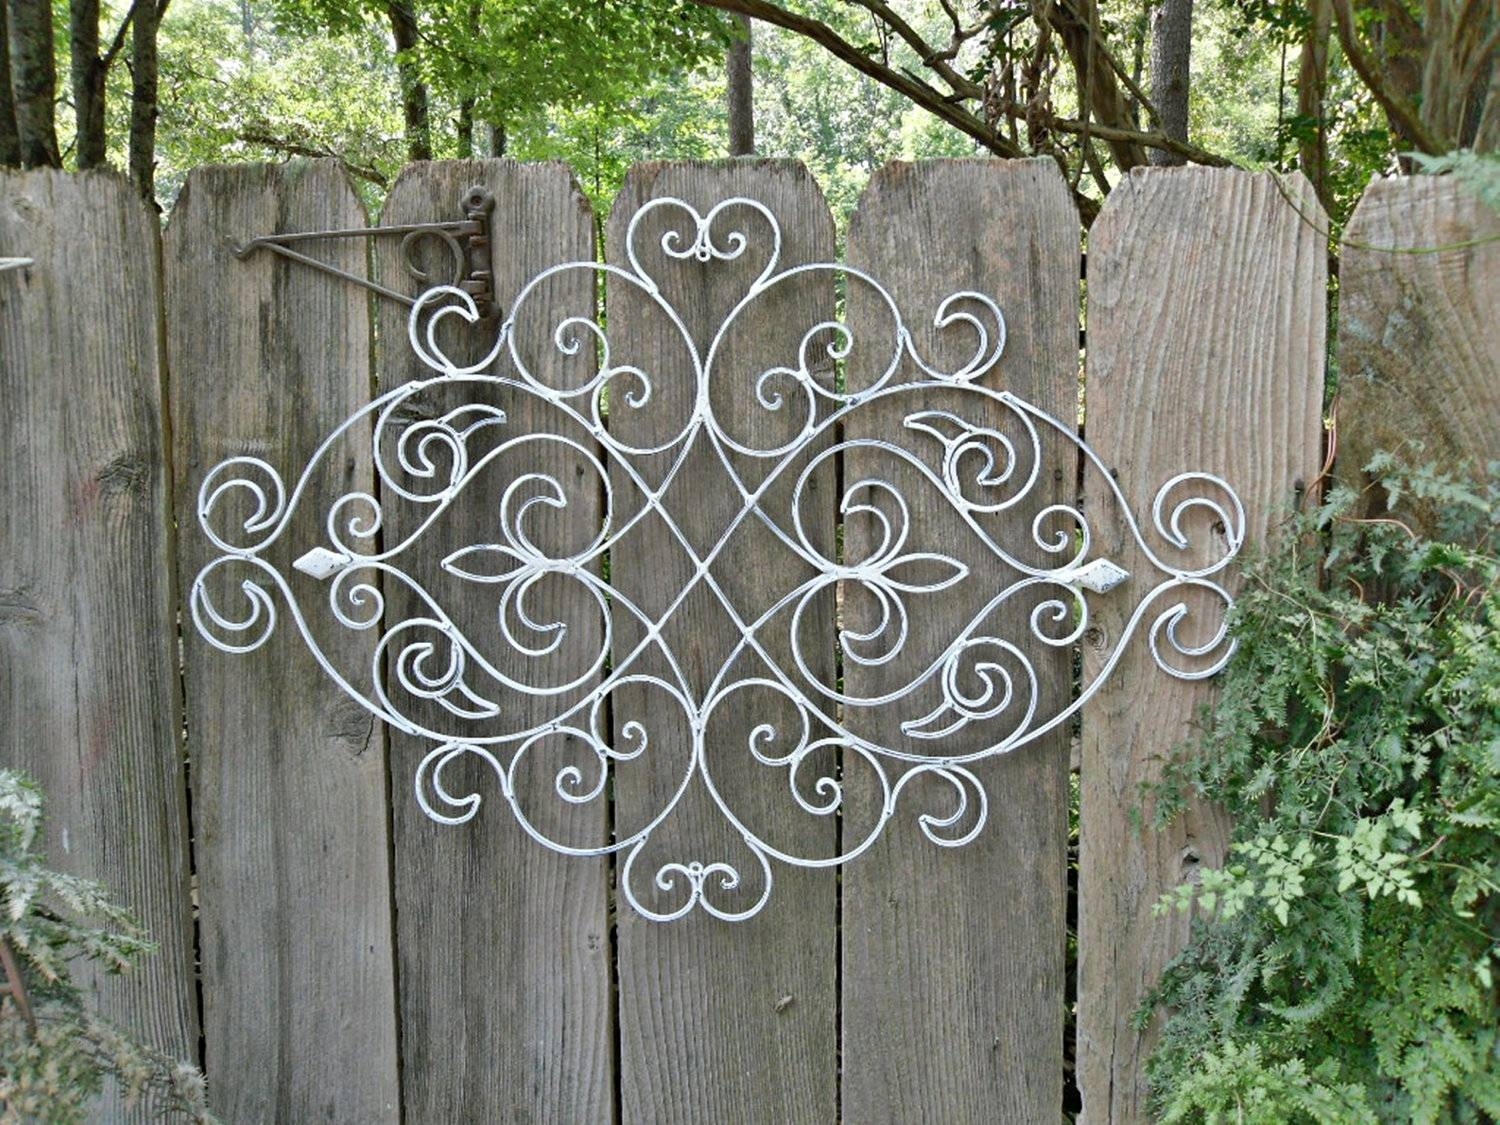 Stupendous Large Outdoor Metal Wall Art Uk Gracie Iron Wall Art With 2018 Large Metal Wall Art For Outdoor (View 17 of 20)